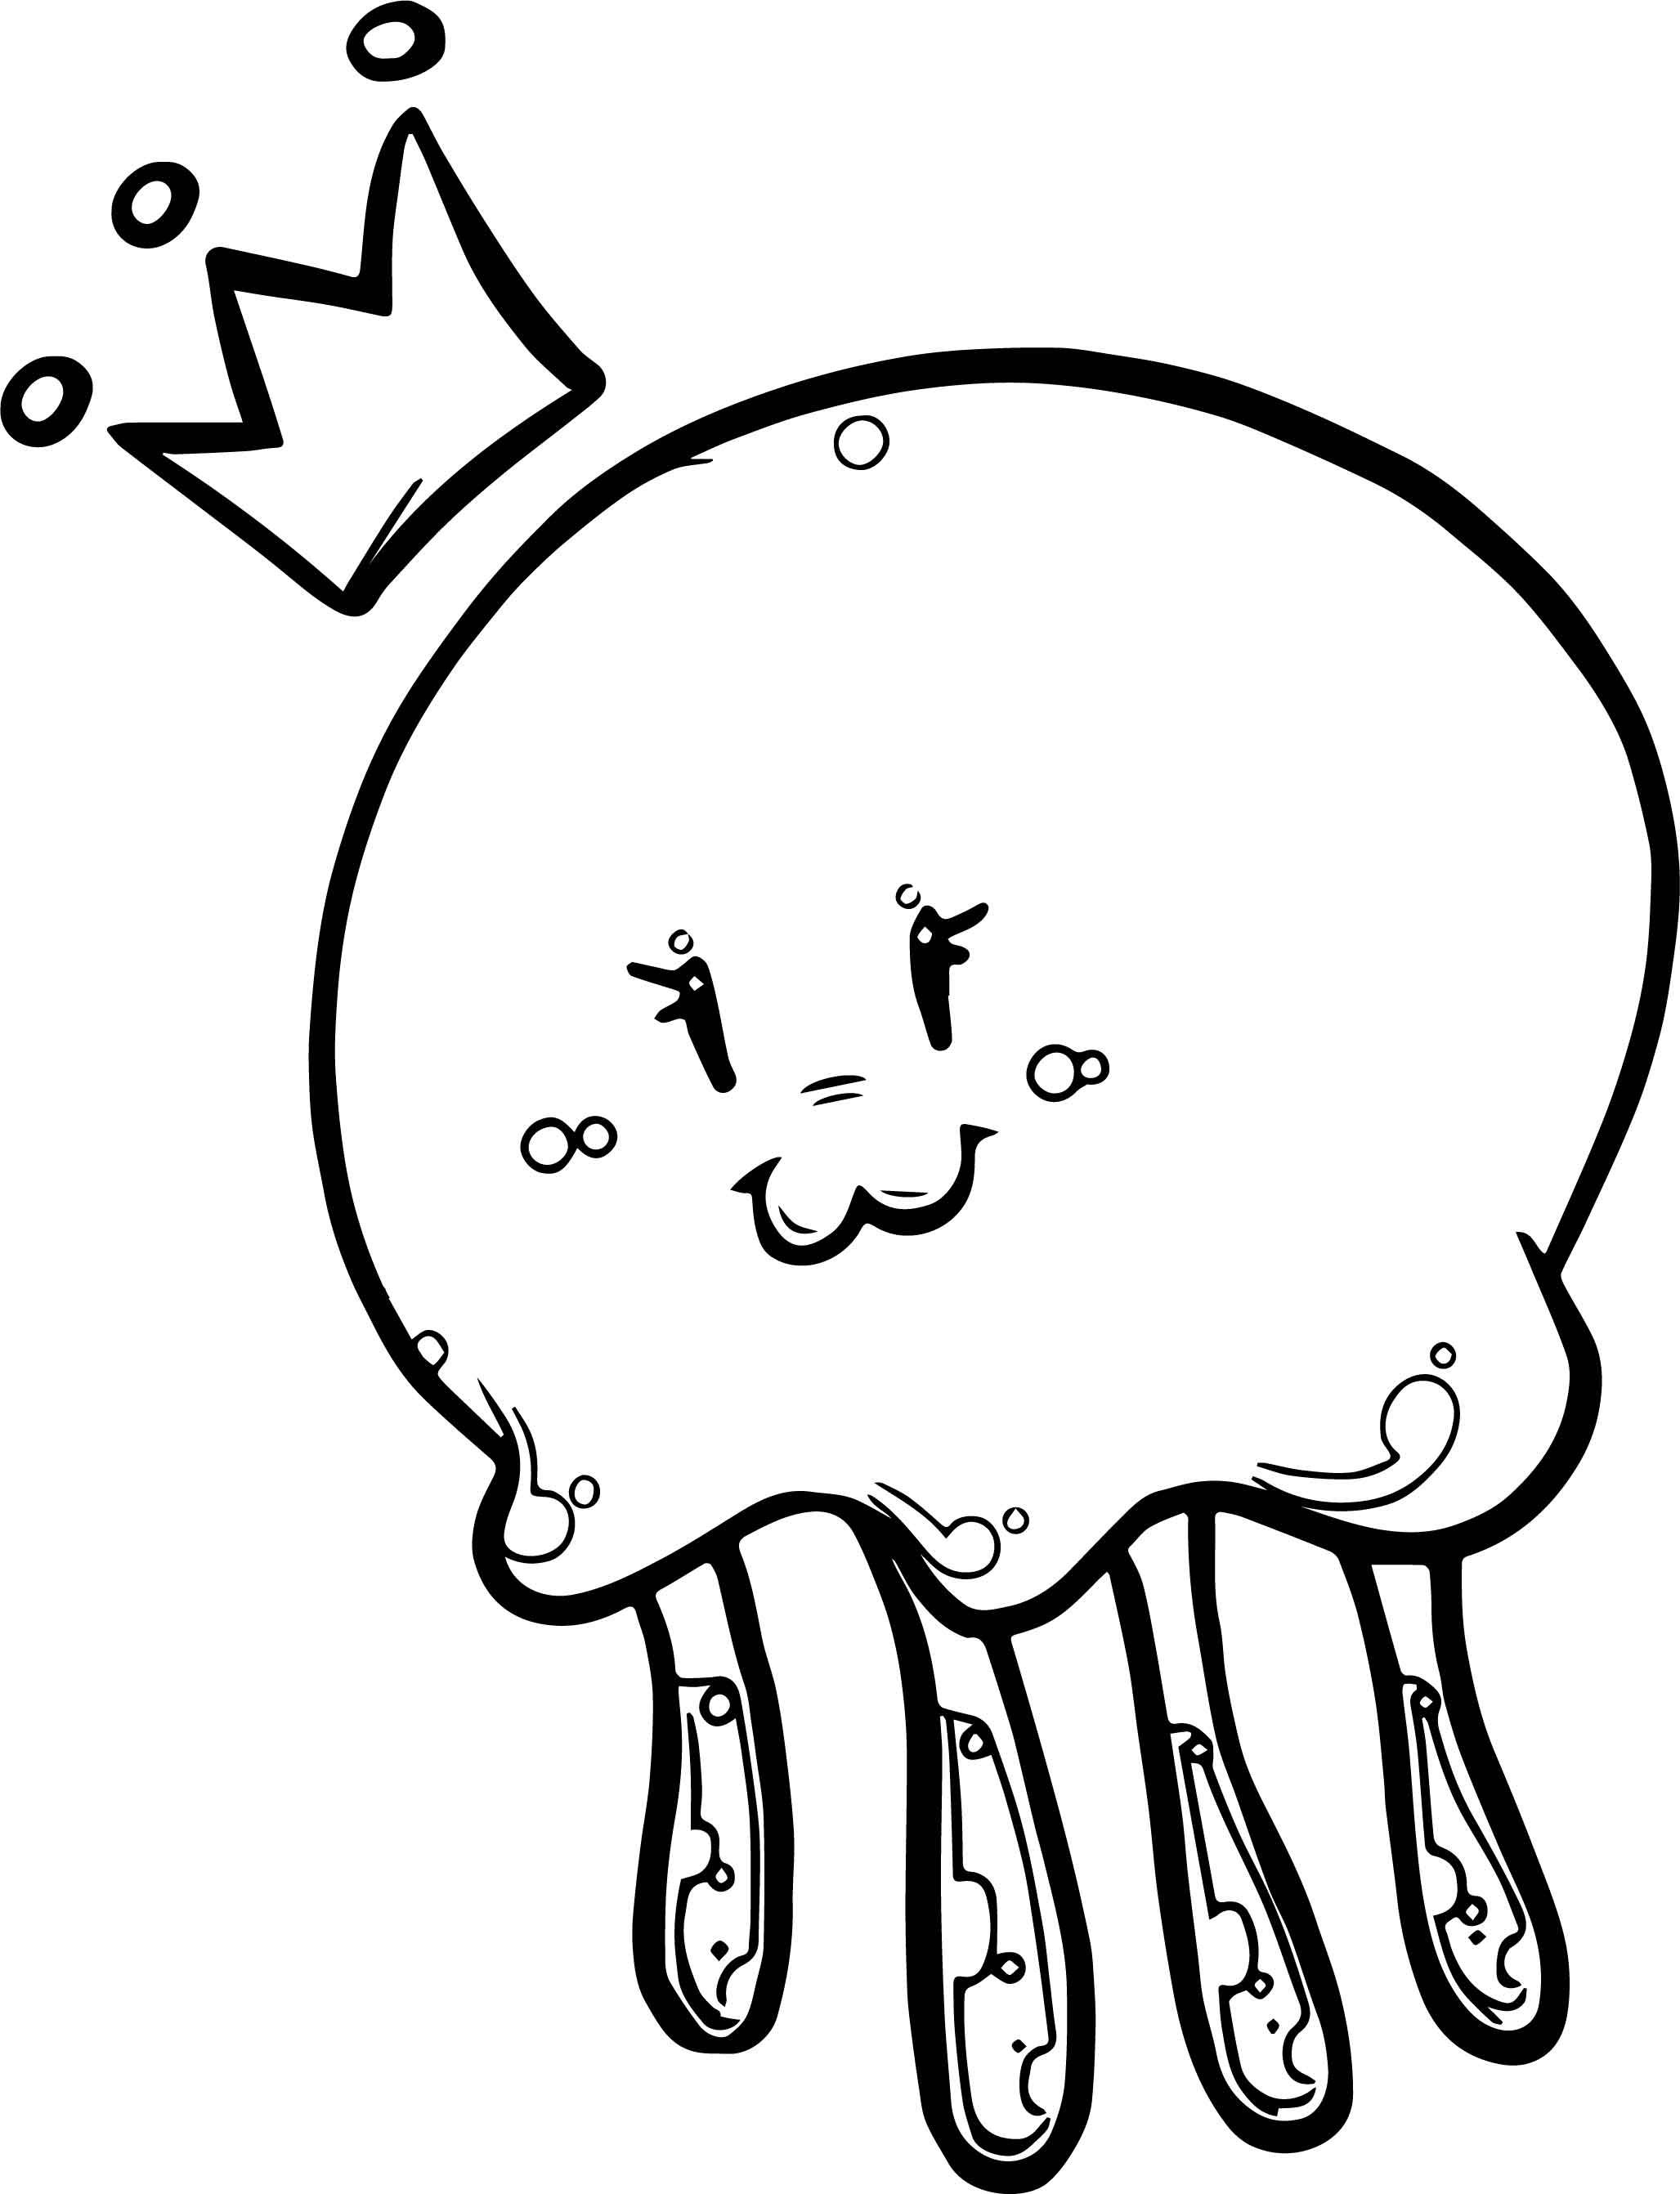 Nice Cute Jellyfish Queen Coloring Page Animal Coloring Pages Lion Coloring Pages Abstract Coloring Pages